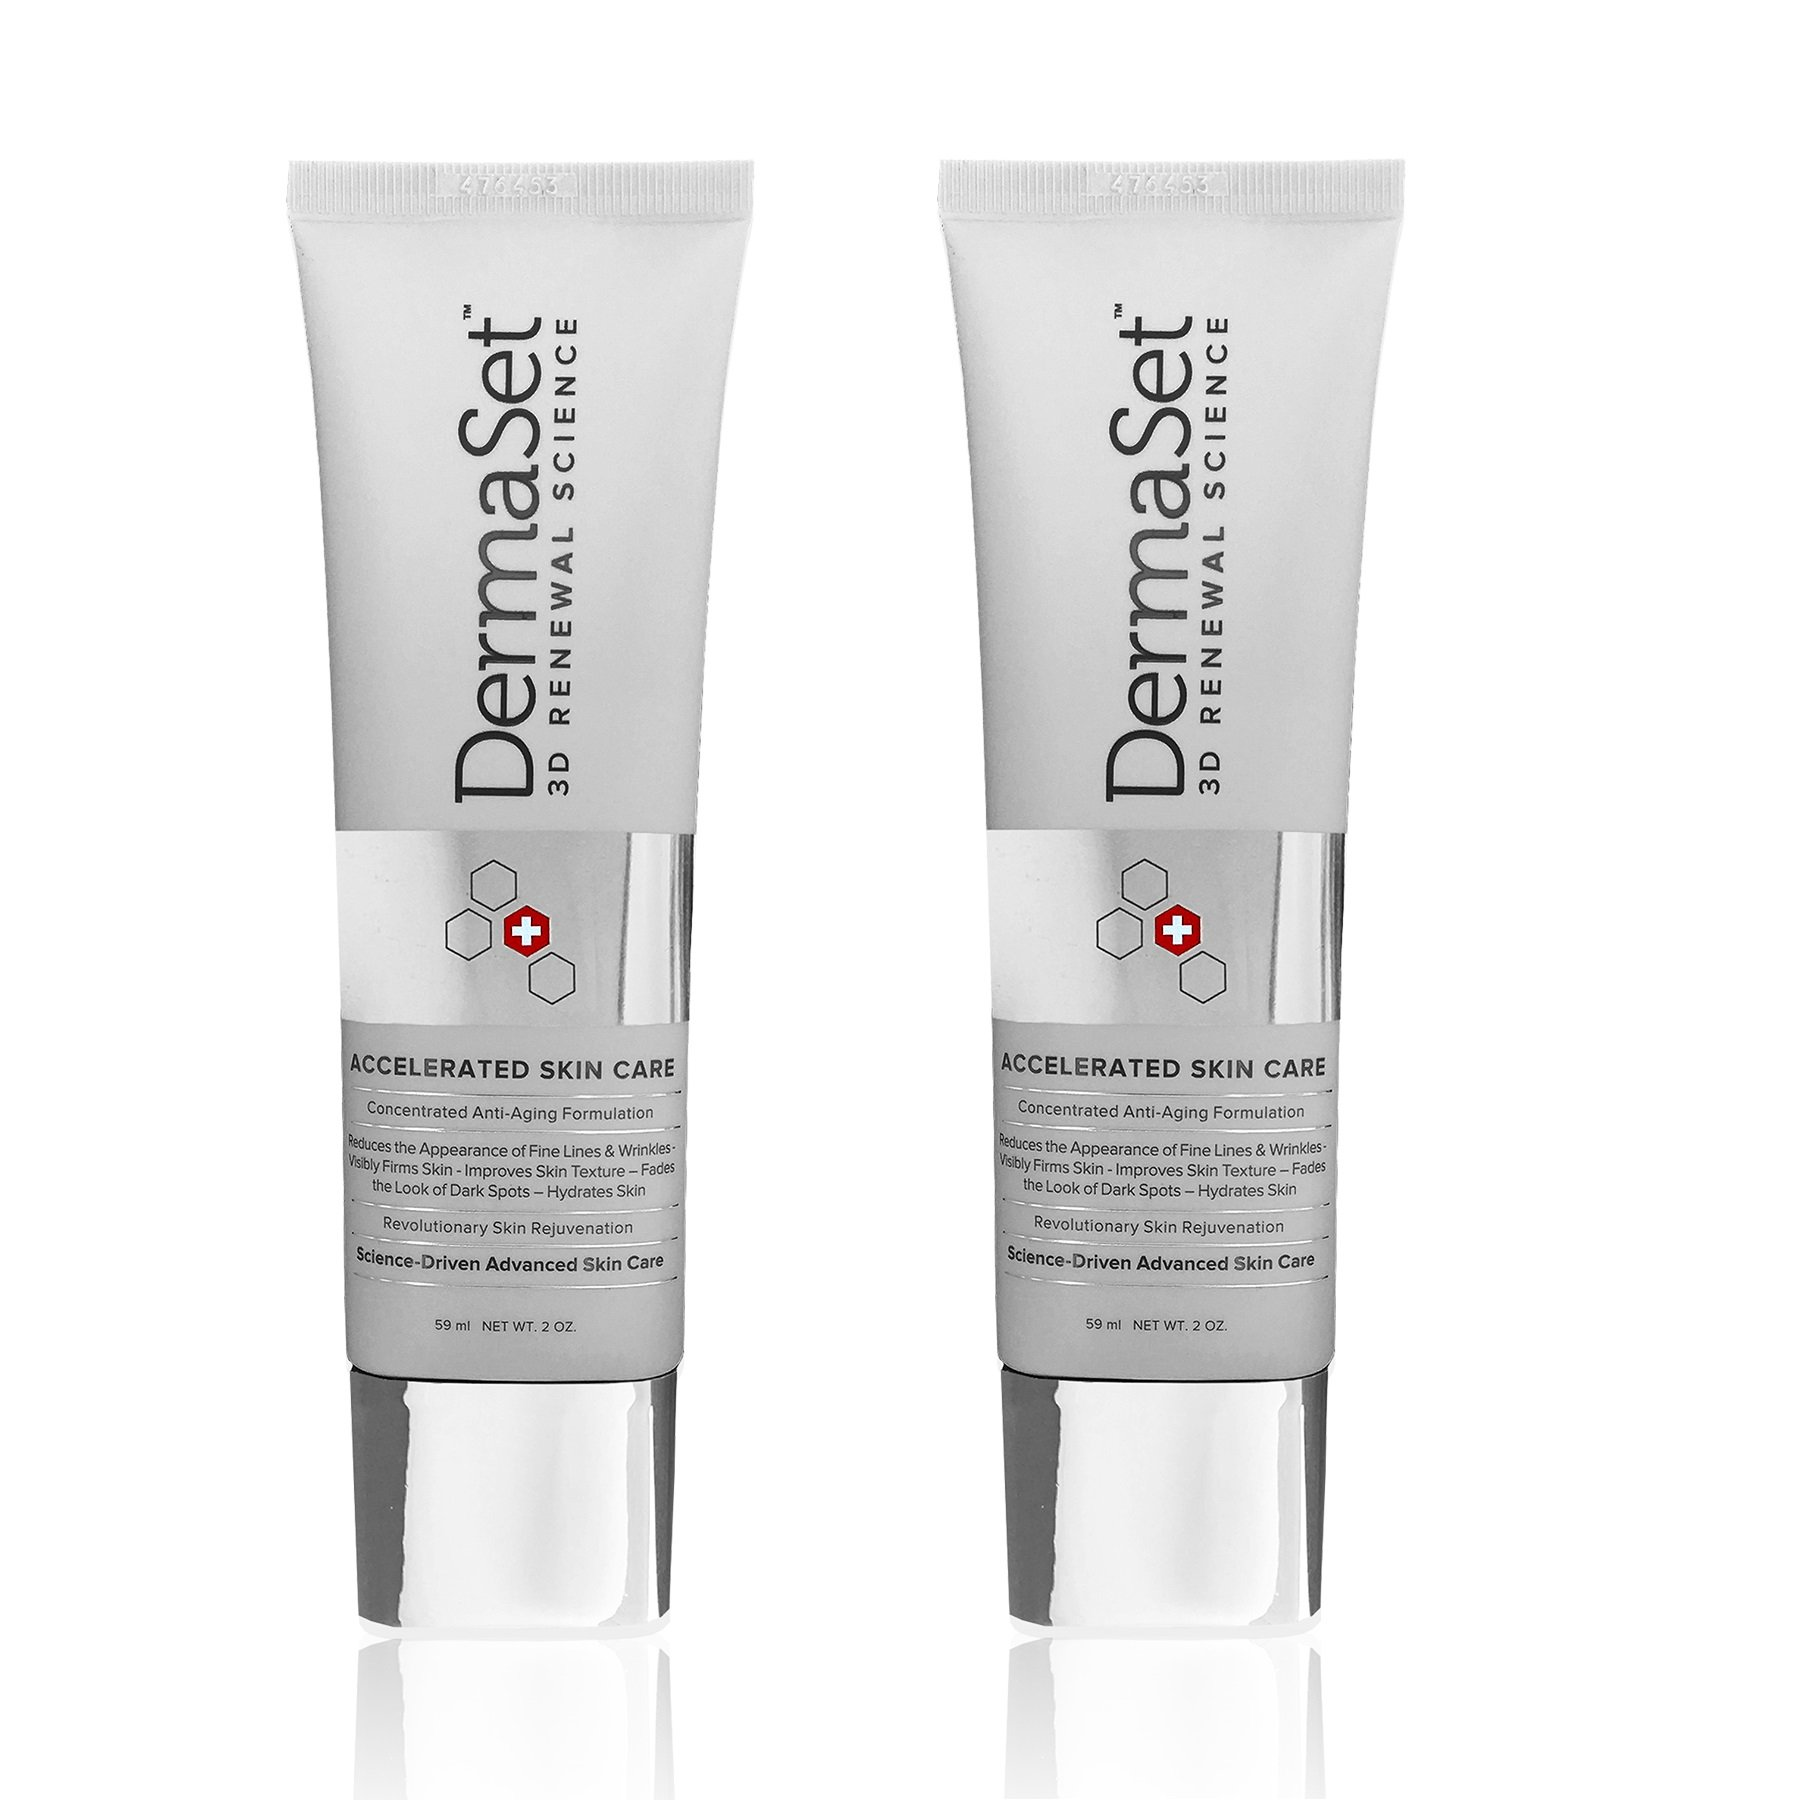 DermaSet Anti-Aging 3D Renewal Cream - Clinically Tested and Hypoallergenic Formula (2 Pack)